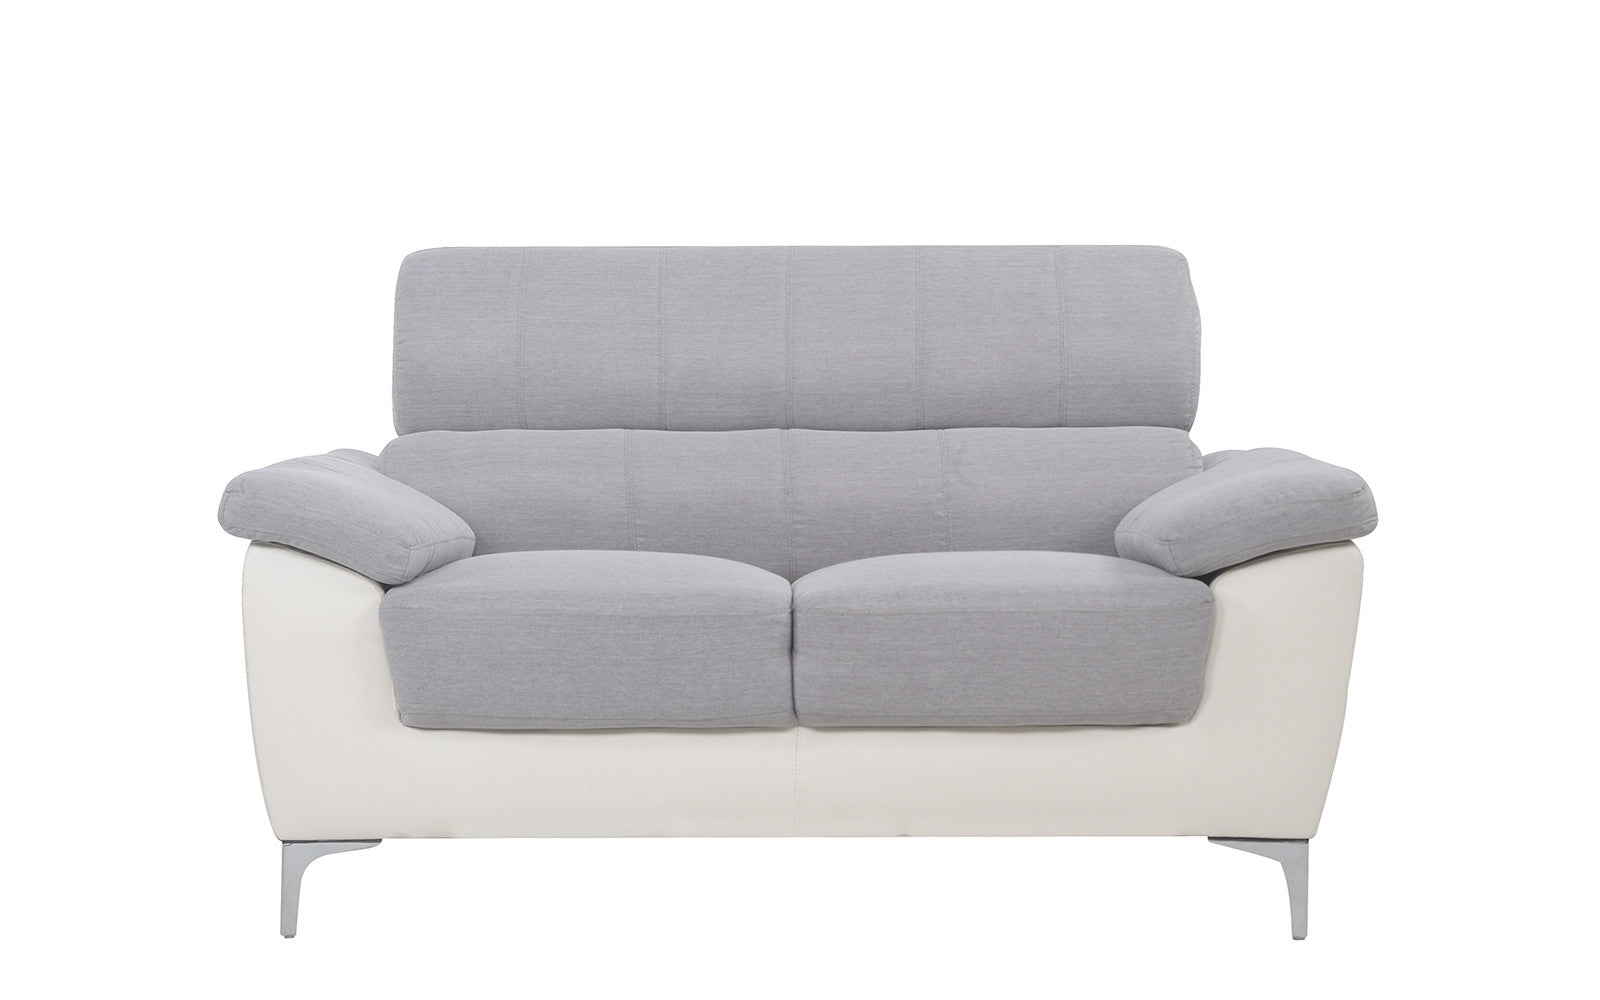 Airy Two Tone Bonded Leather Loveseat Image